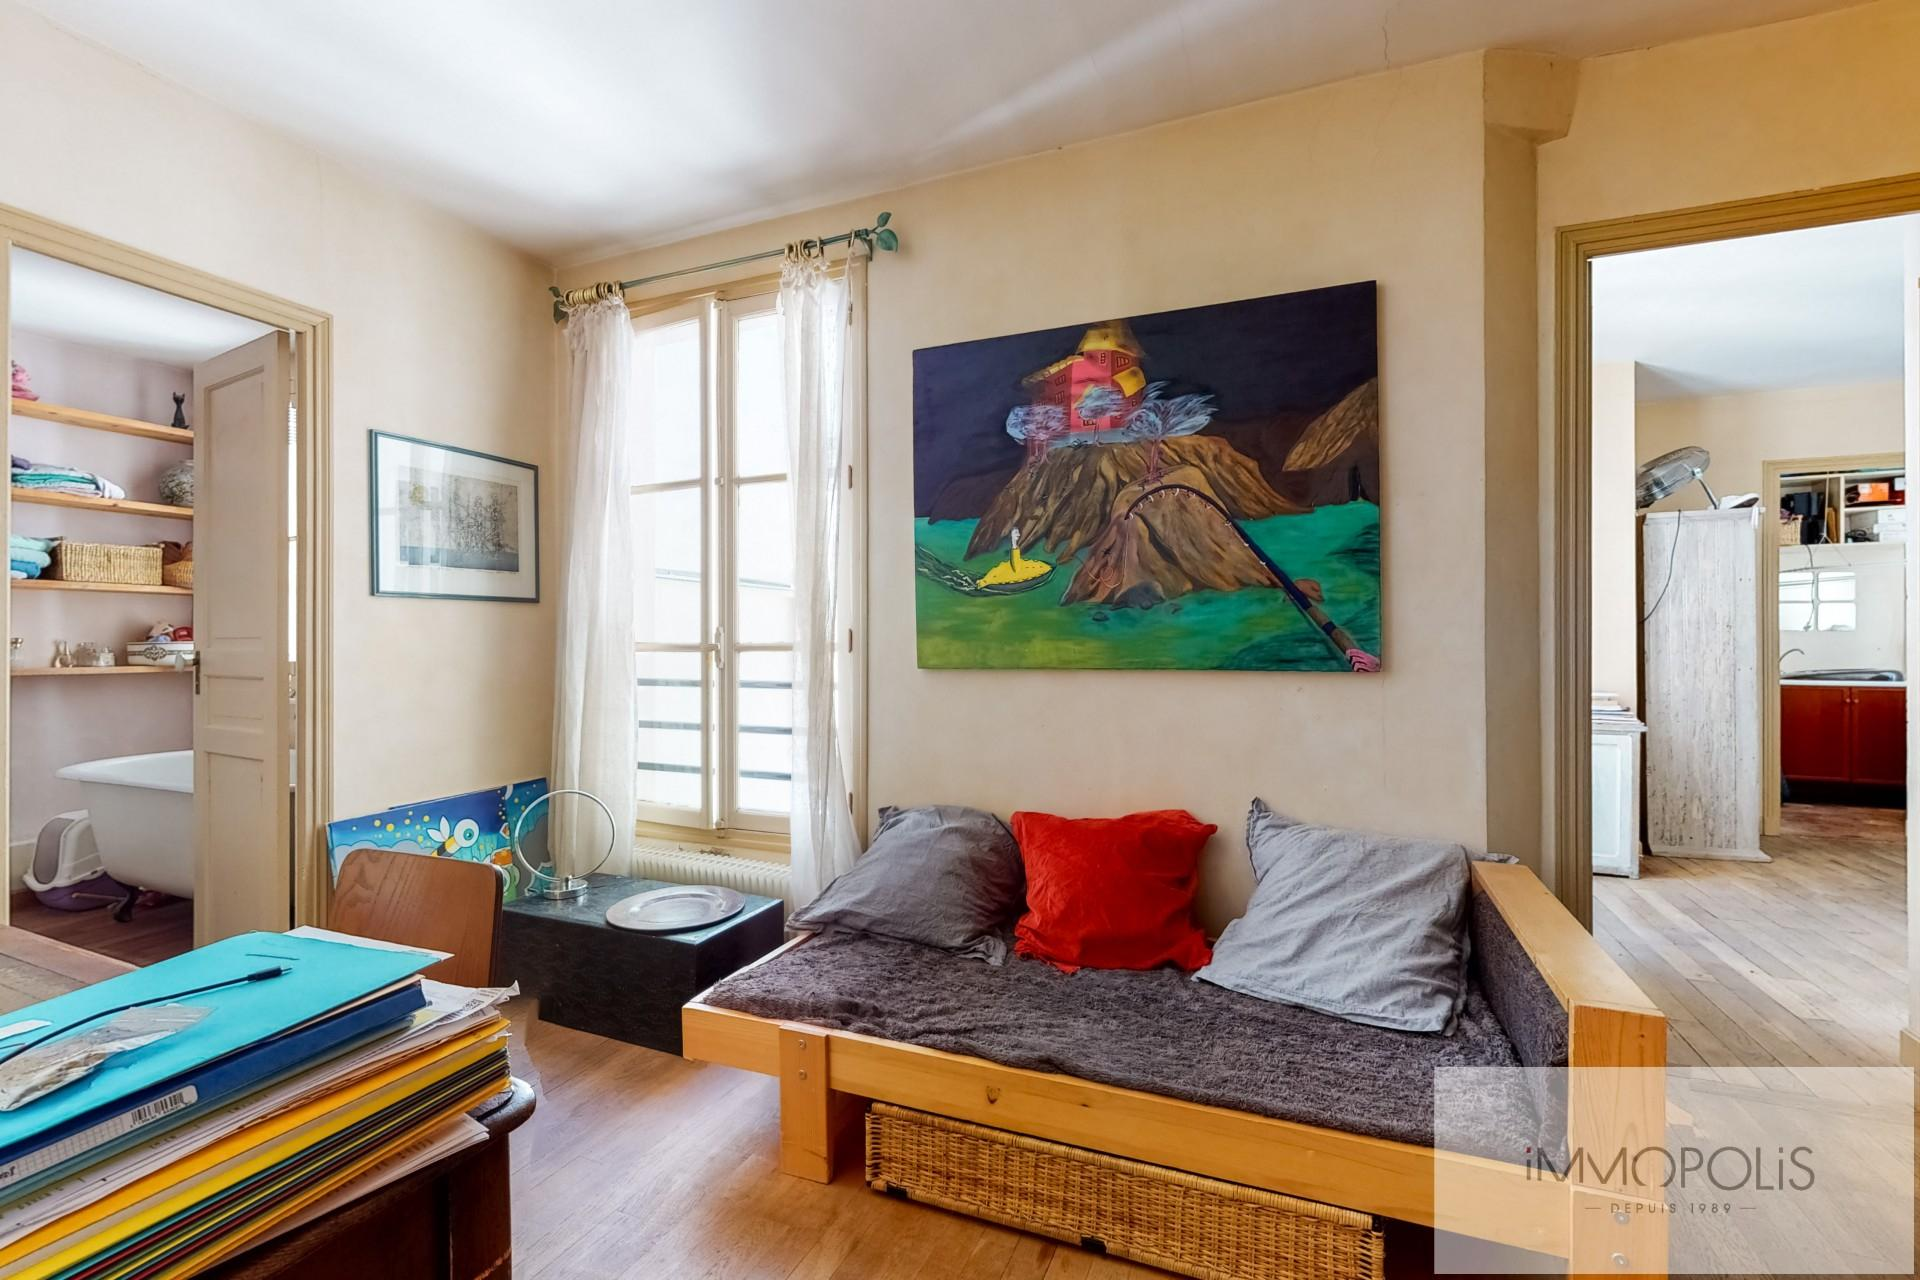 Appartement atypique, plein de charme, Rue Richard Lenoir – Paris XIème 8